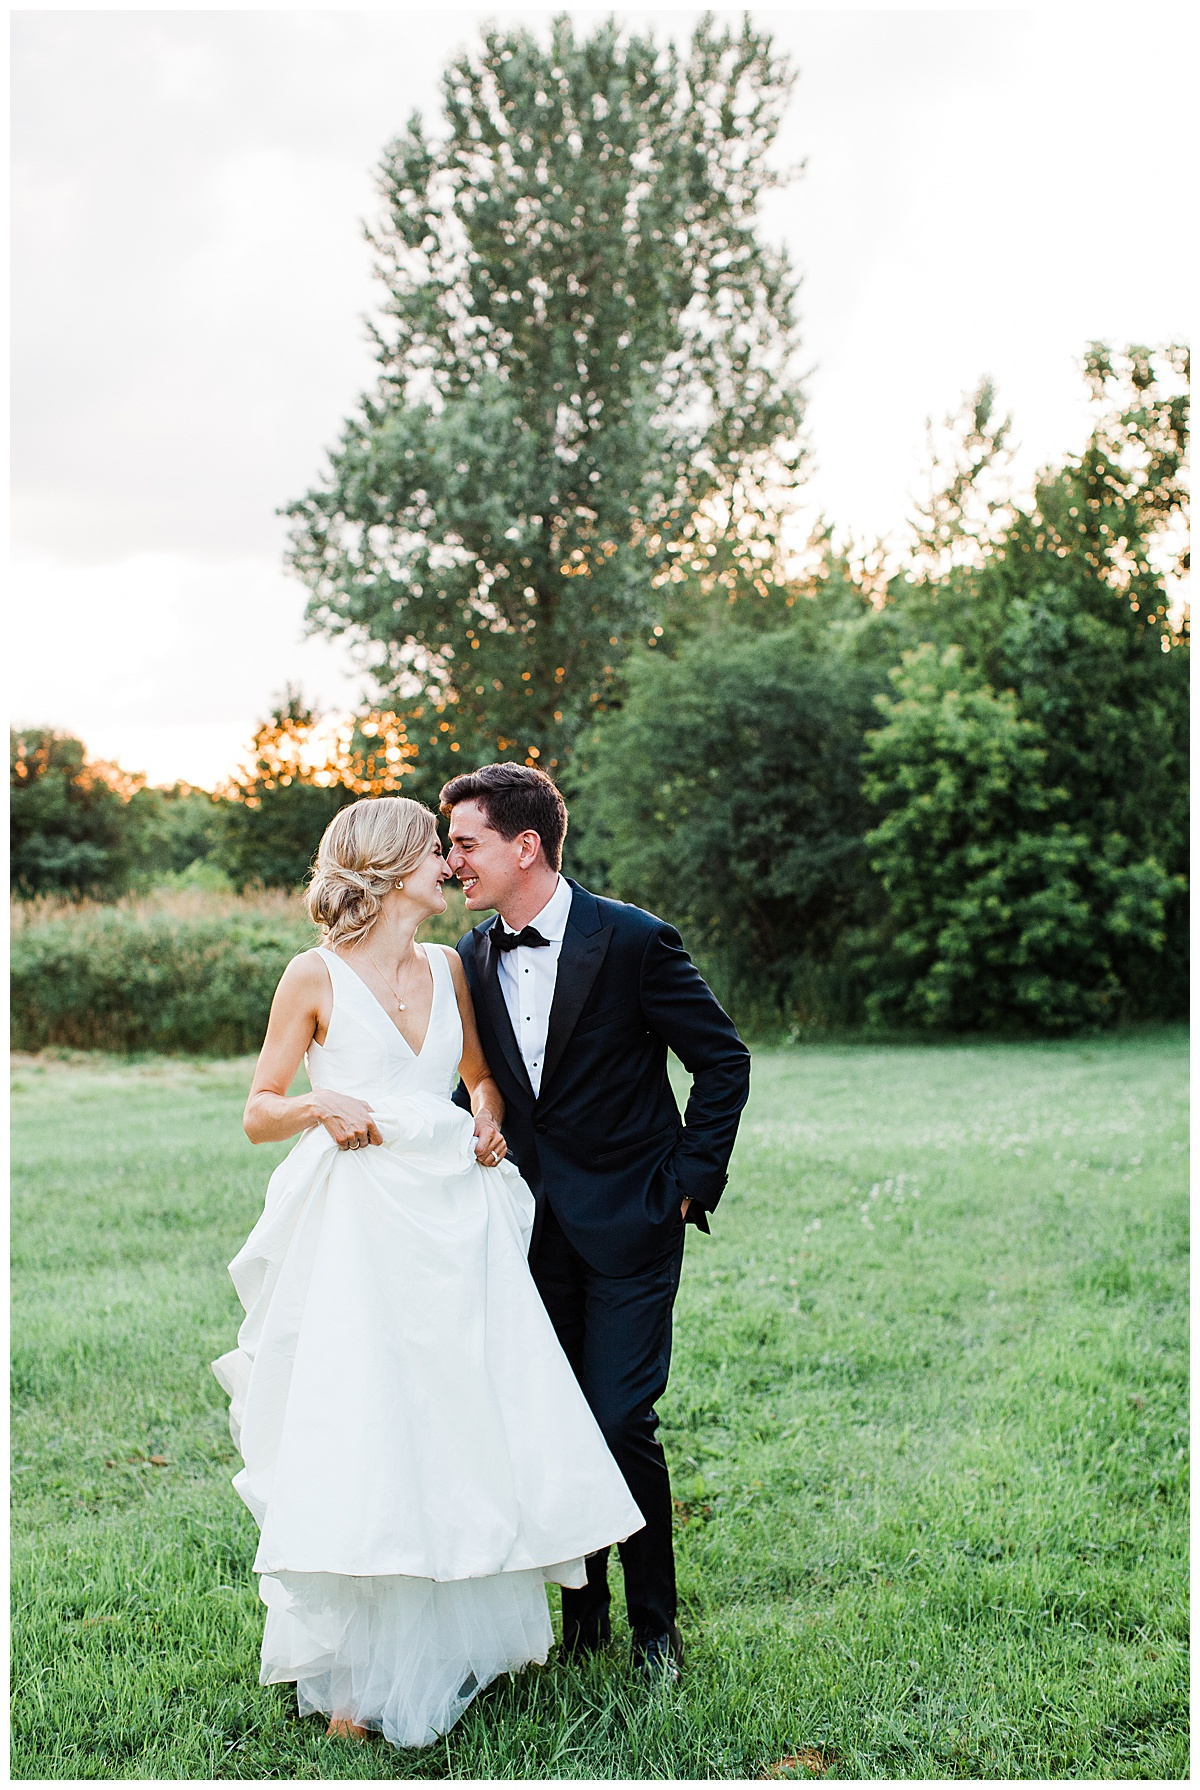 Bride and groom stand in field nuzzling noses at sunset  Ontario wedding  Toronto wedding photographer  3photography